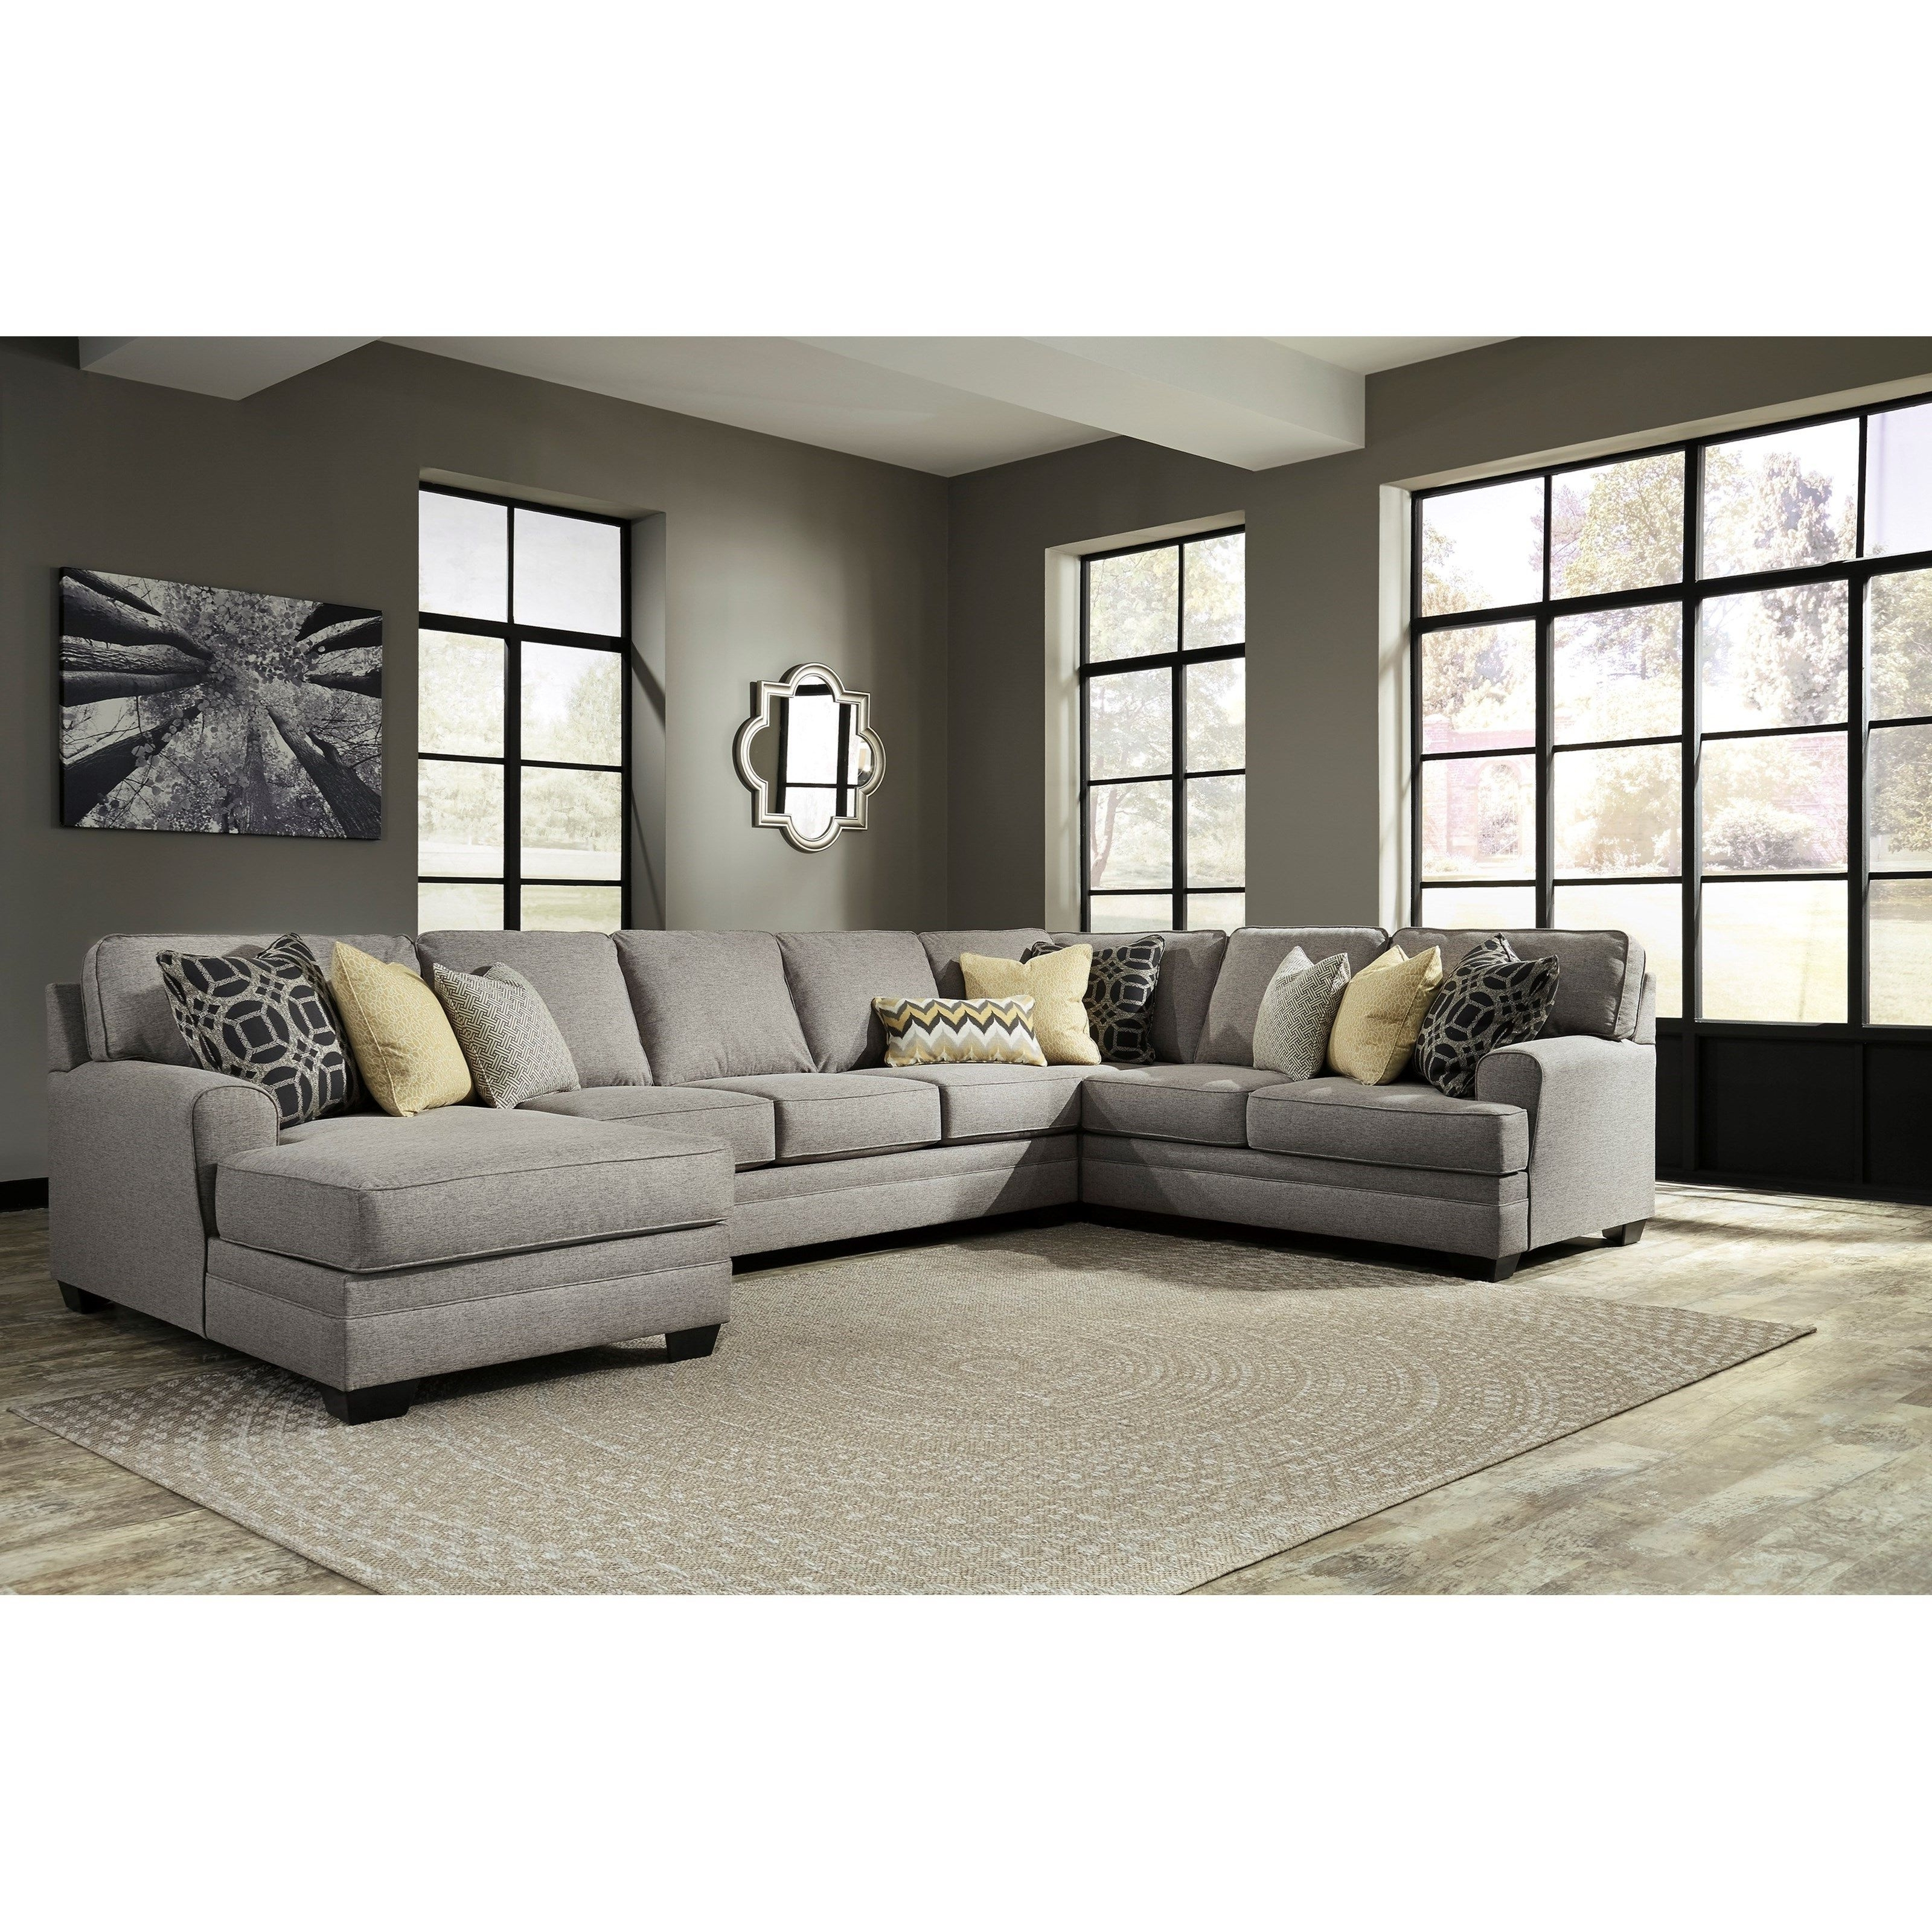 Best And Newest Armless Sectional Sofas In Contemporary 4 Piece Sectional With Chaise & Armless Sofa (View 3 of 15)